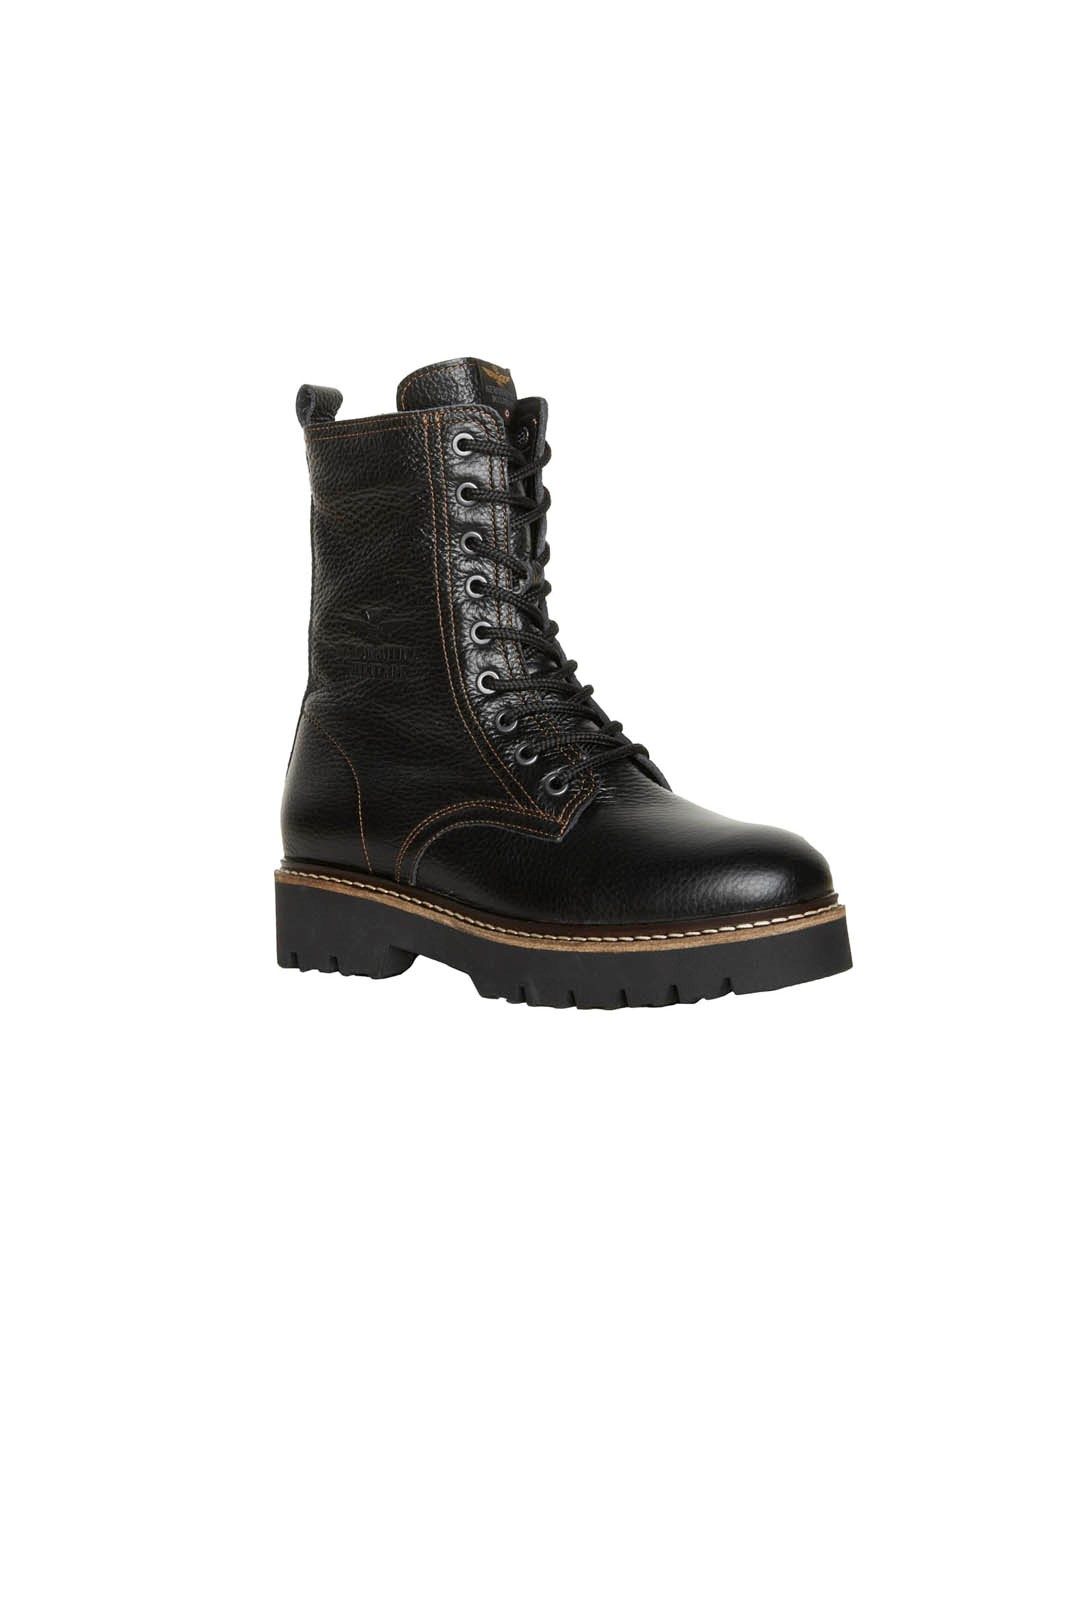 Leather Combat boots lined in pure wool  1